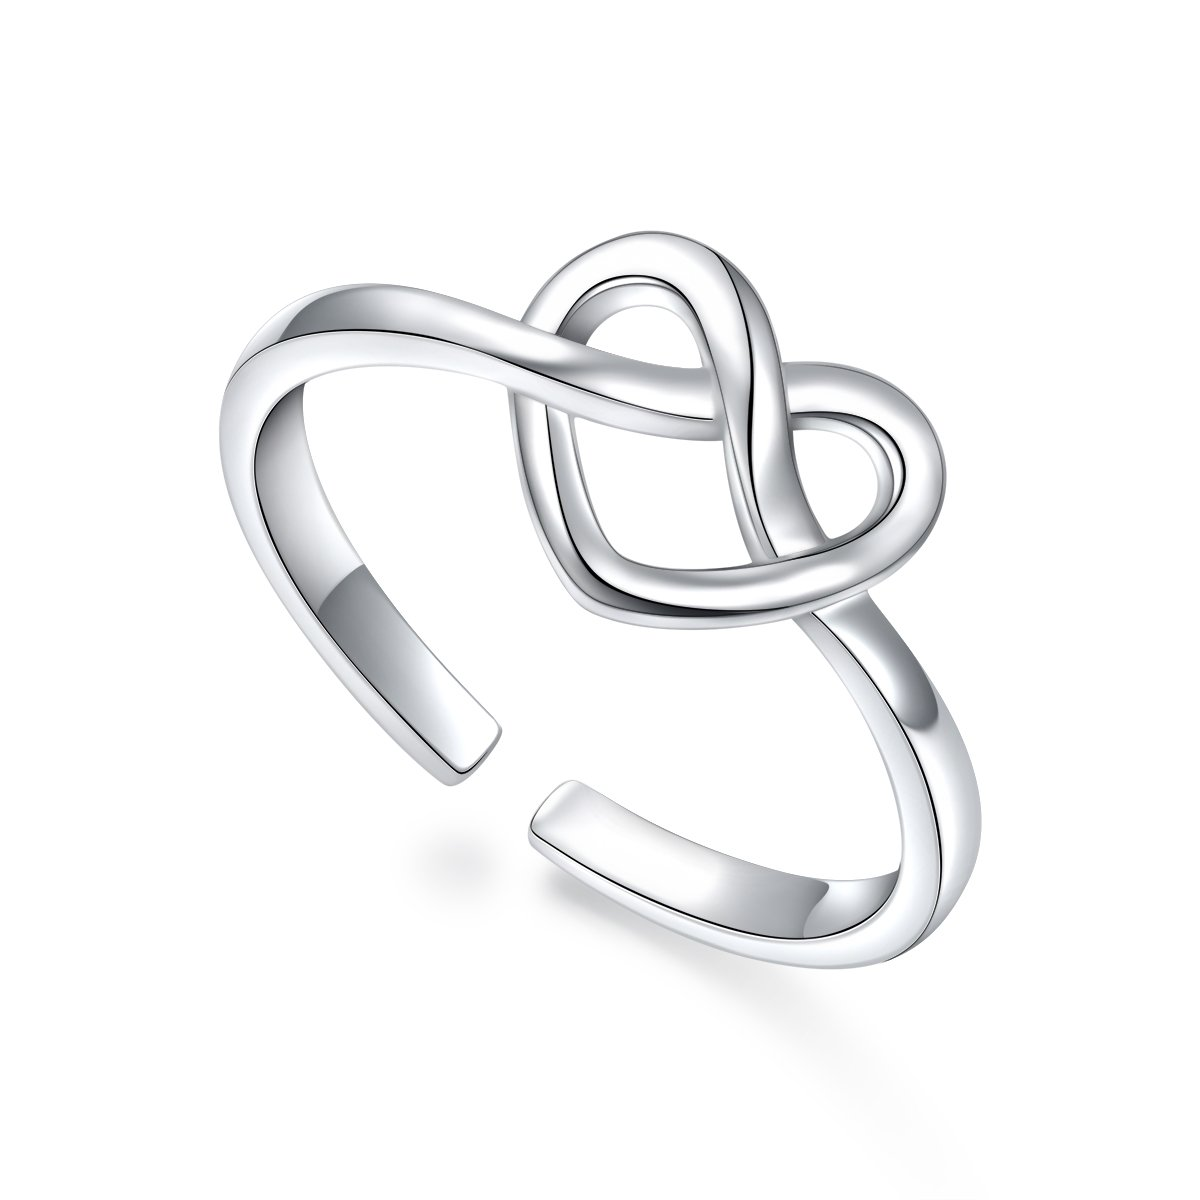 ALPHM Toe Ring for Women S925 Sterling Silver Adjustable Wrap Open Heart Knot Ring